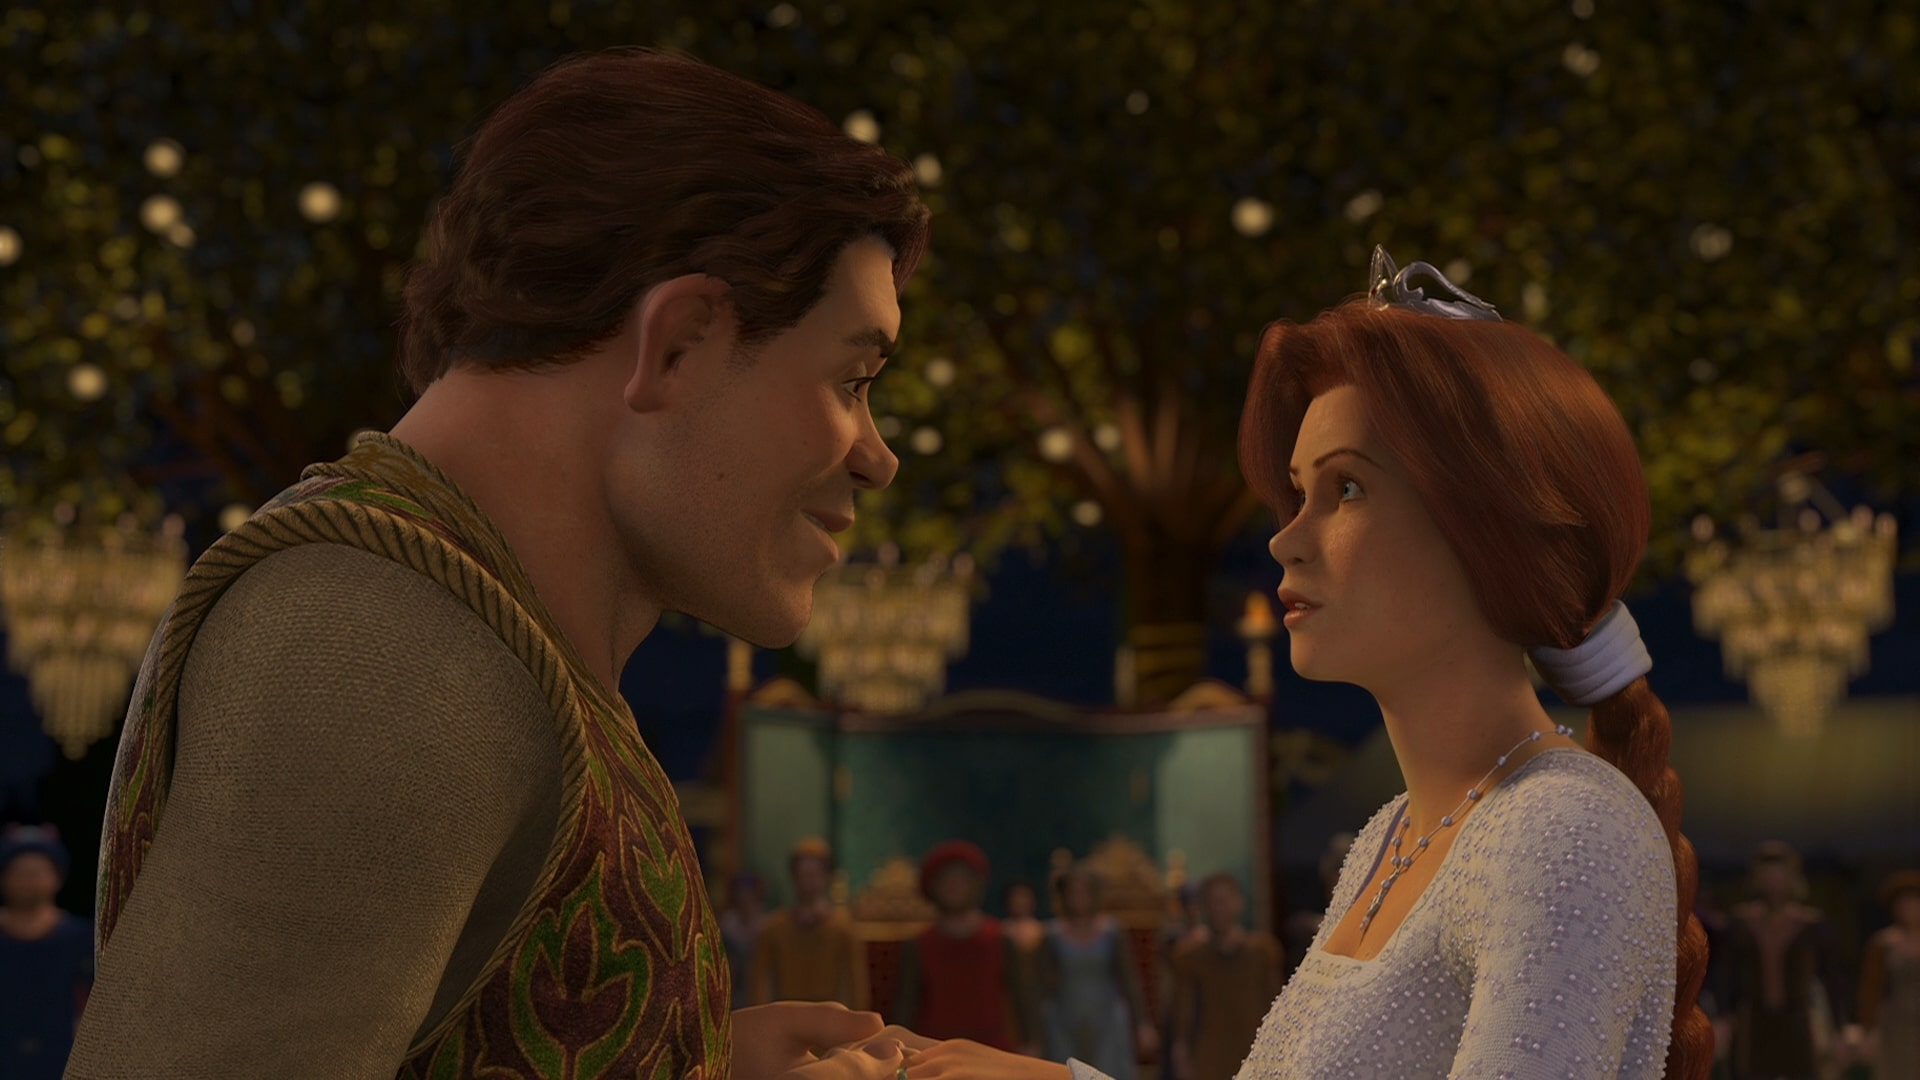 - Human Shrek and Fiona jpg - WikiShrek - The wiki all about ShrekShrek 3 Human